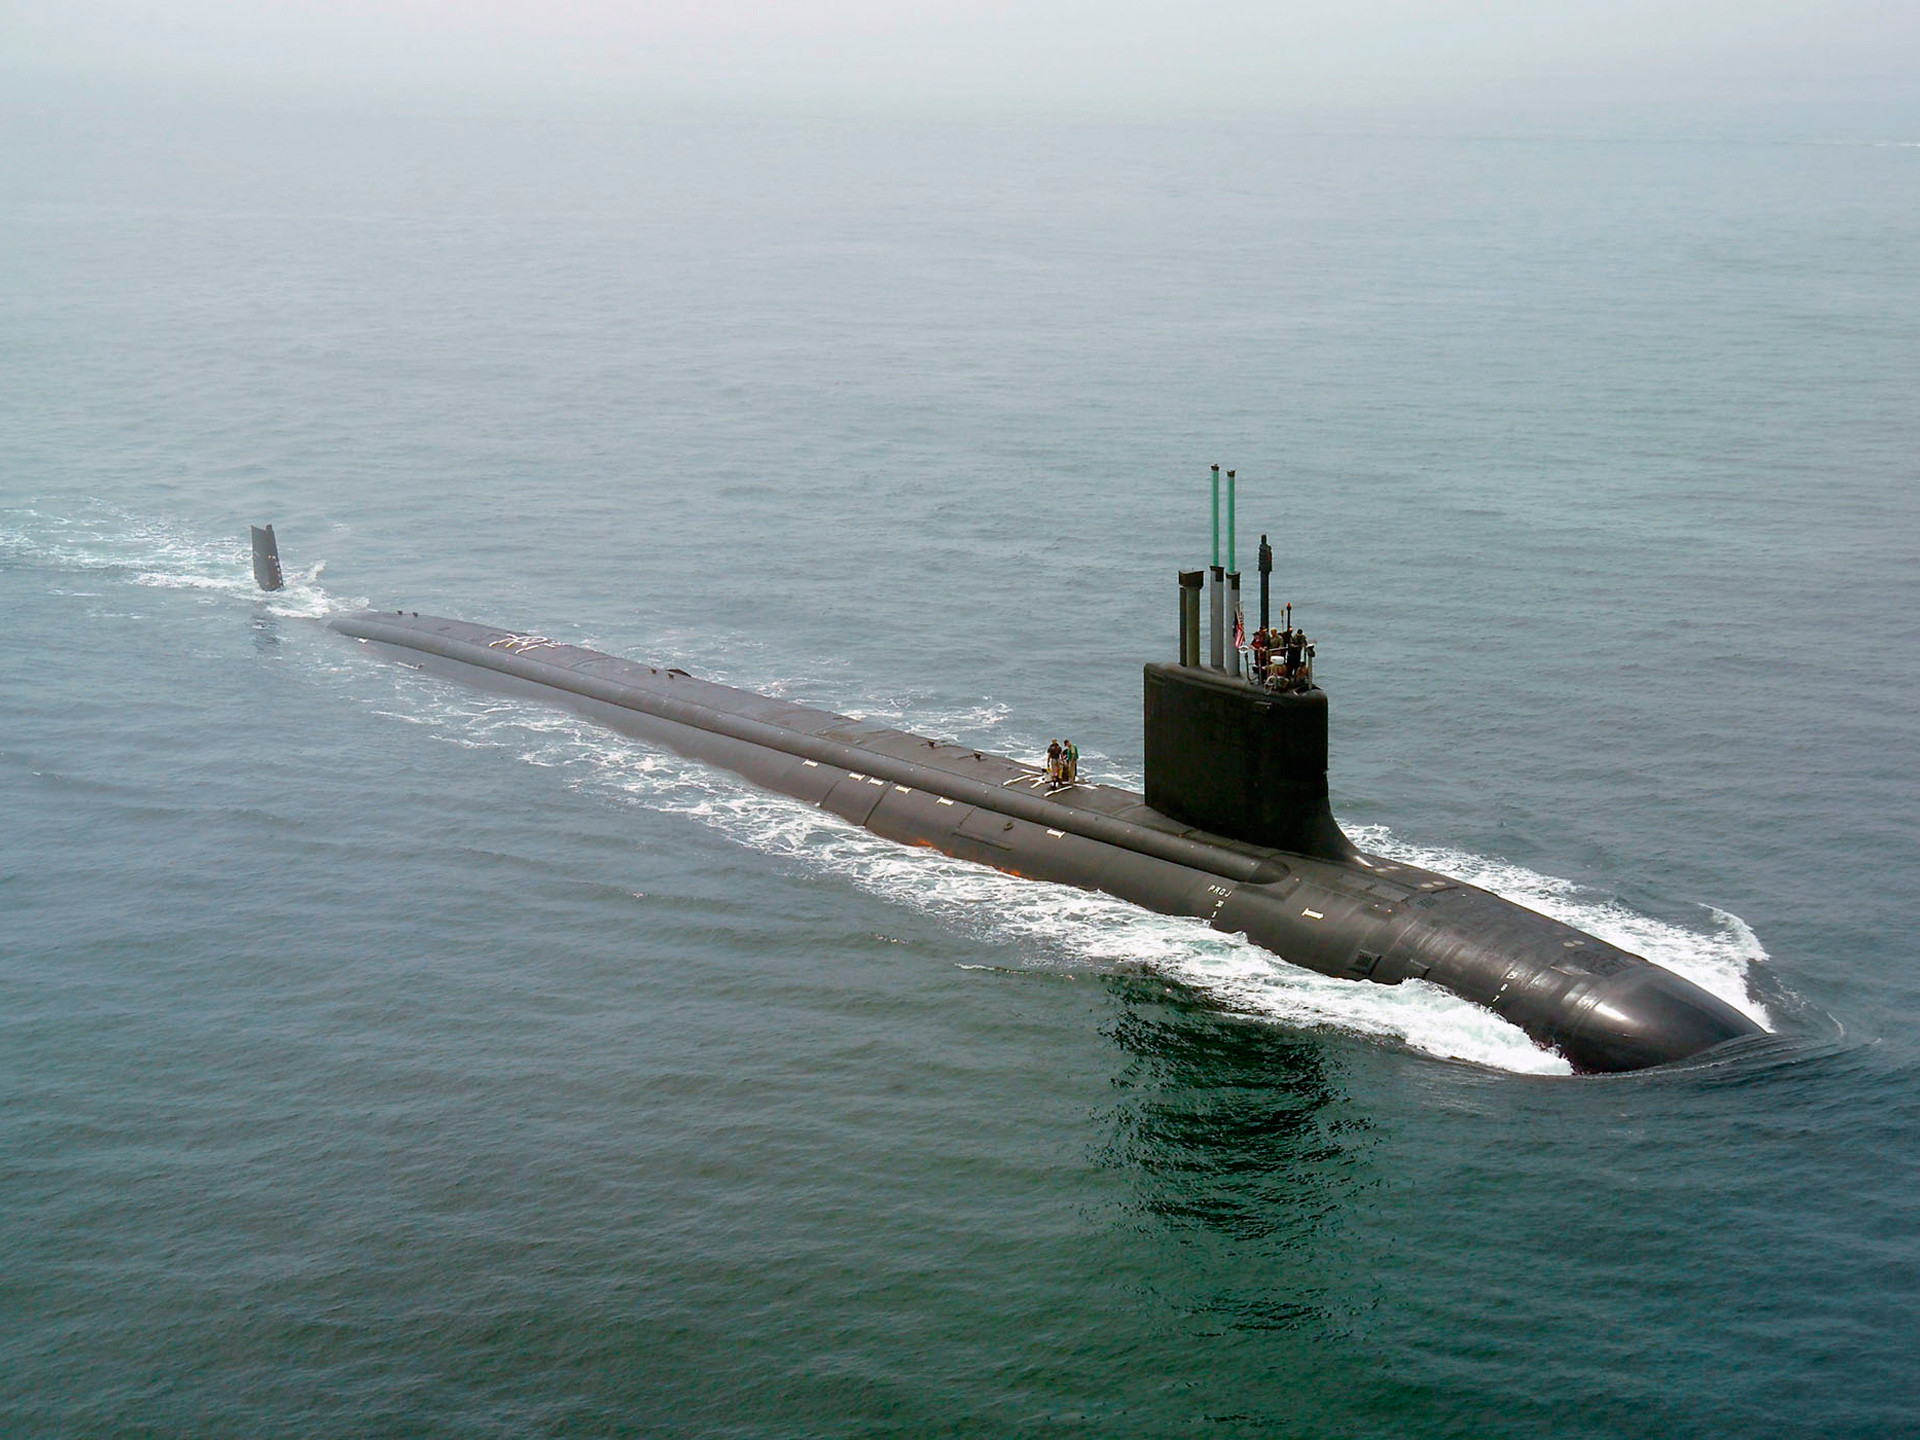 Wallpaper Wallpapers US Navy Submarines PicuresMilitary Nuclear 1920x1440